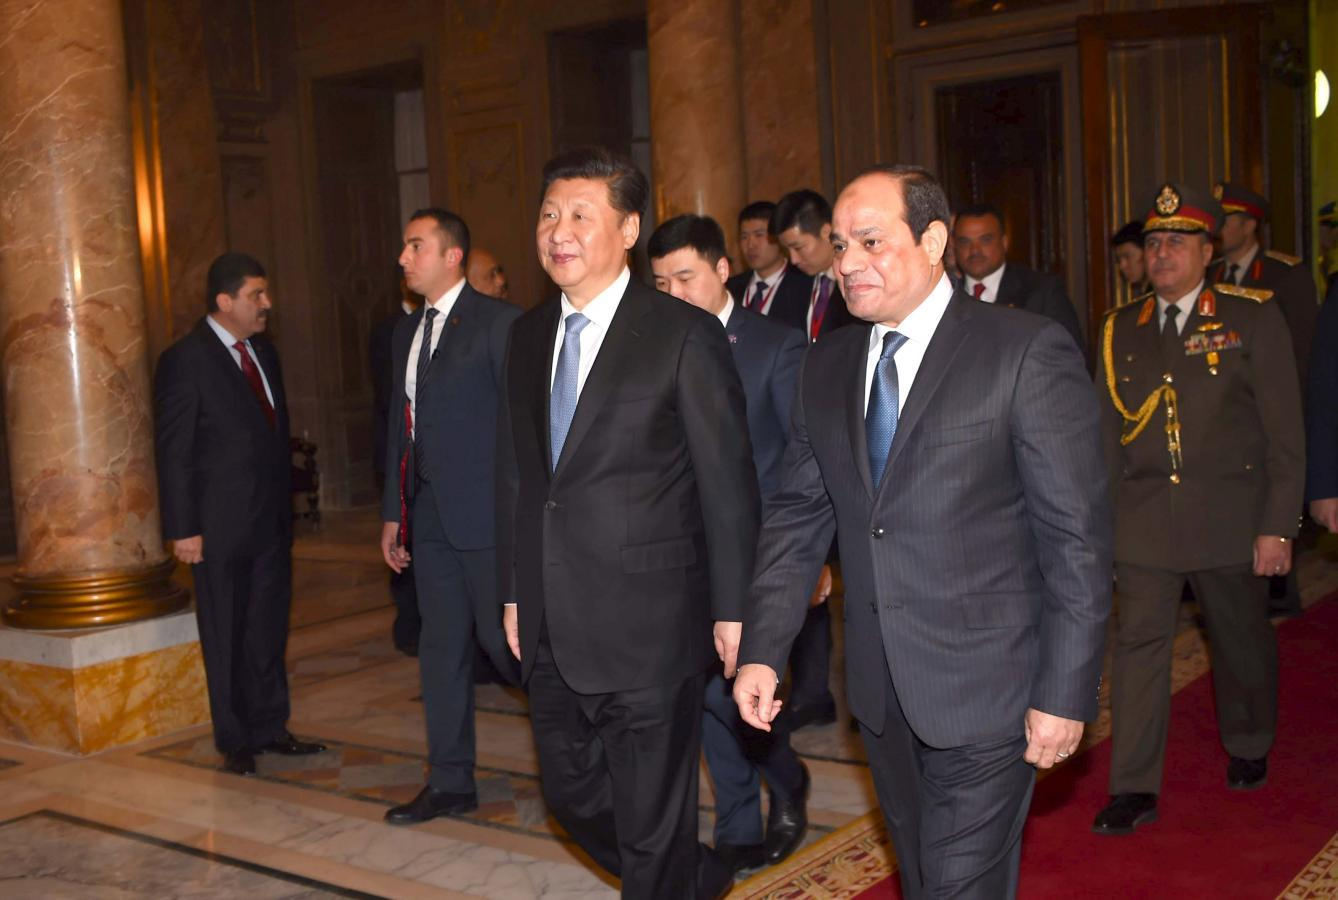 Egyptian President Abdel Fattah Al Sisi R Walks With Chinese Xi Jinping 2nd In Abdeen Palace During The Presidents First Day Of His